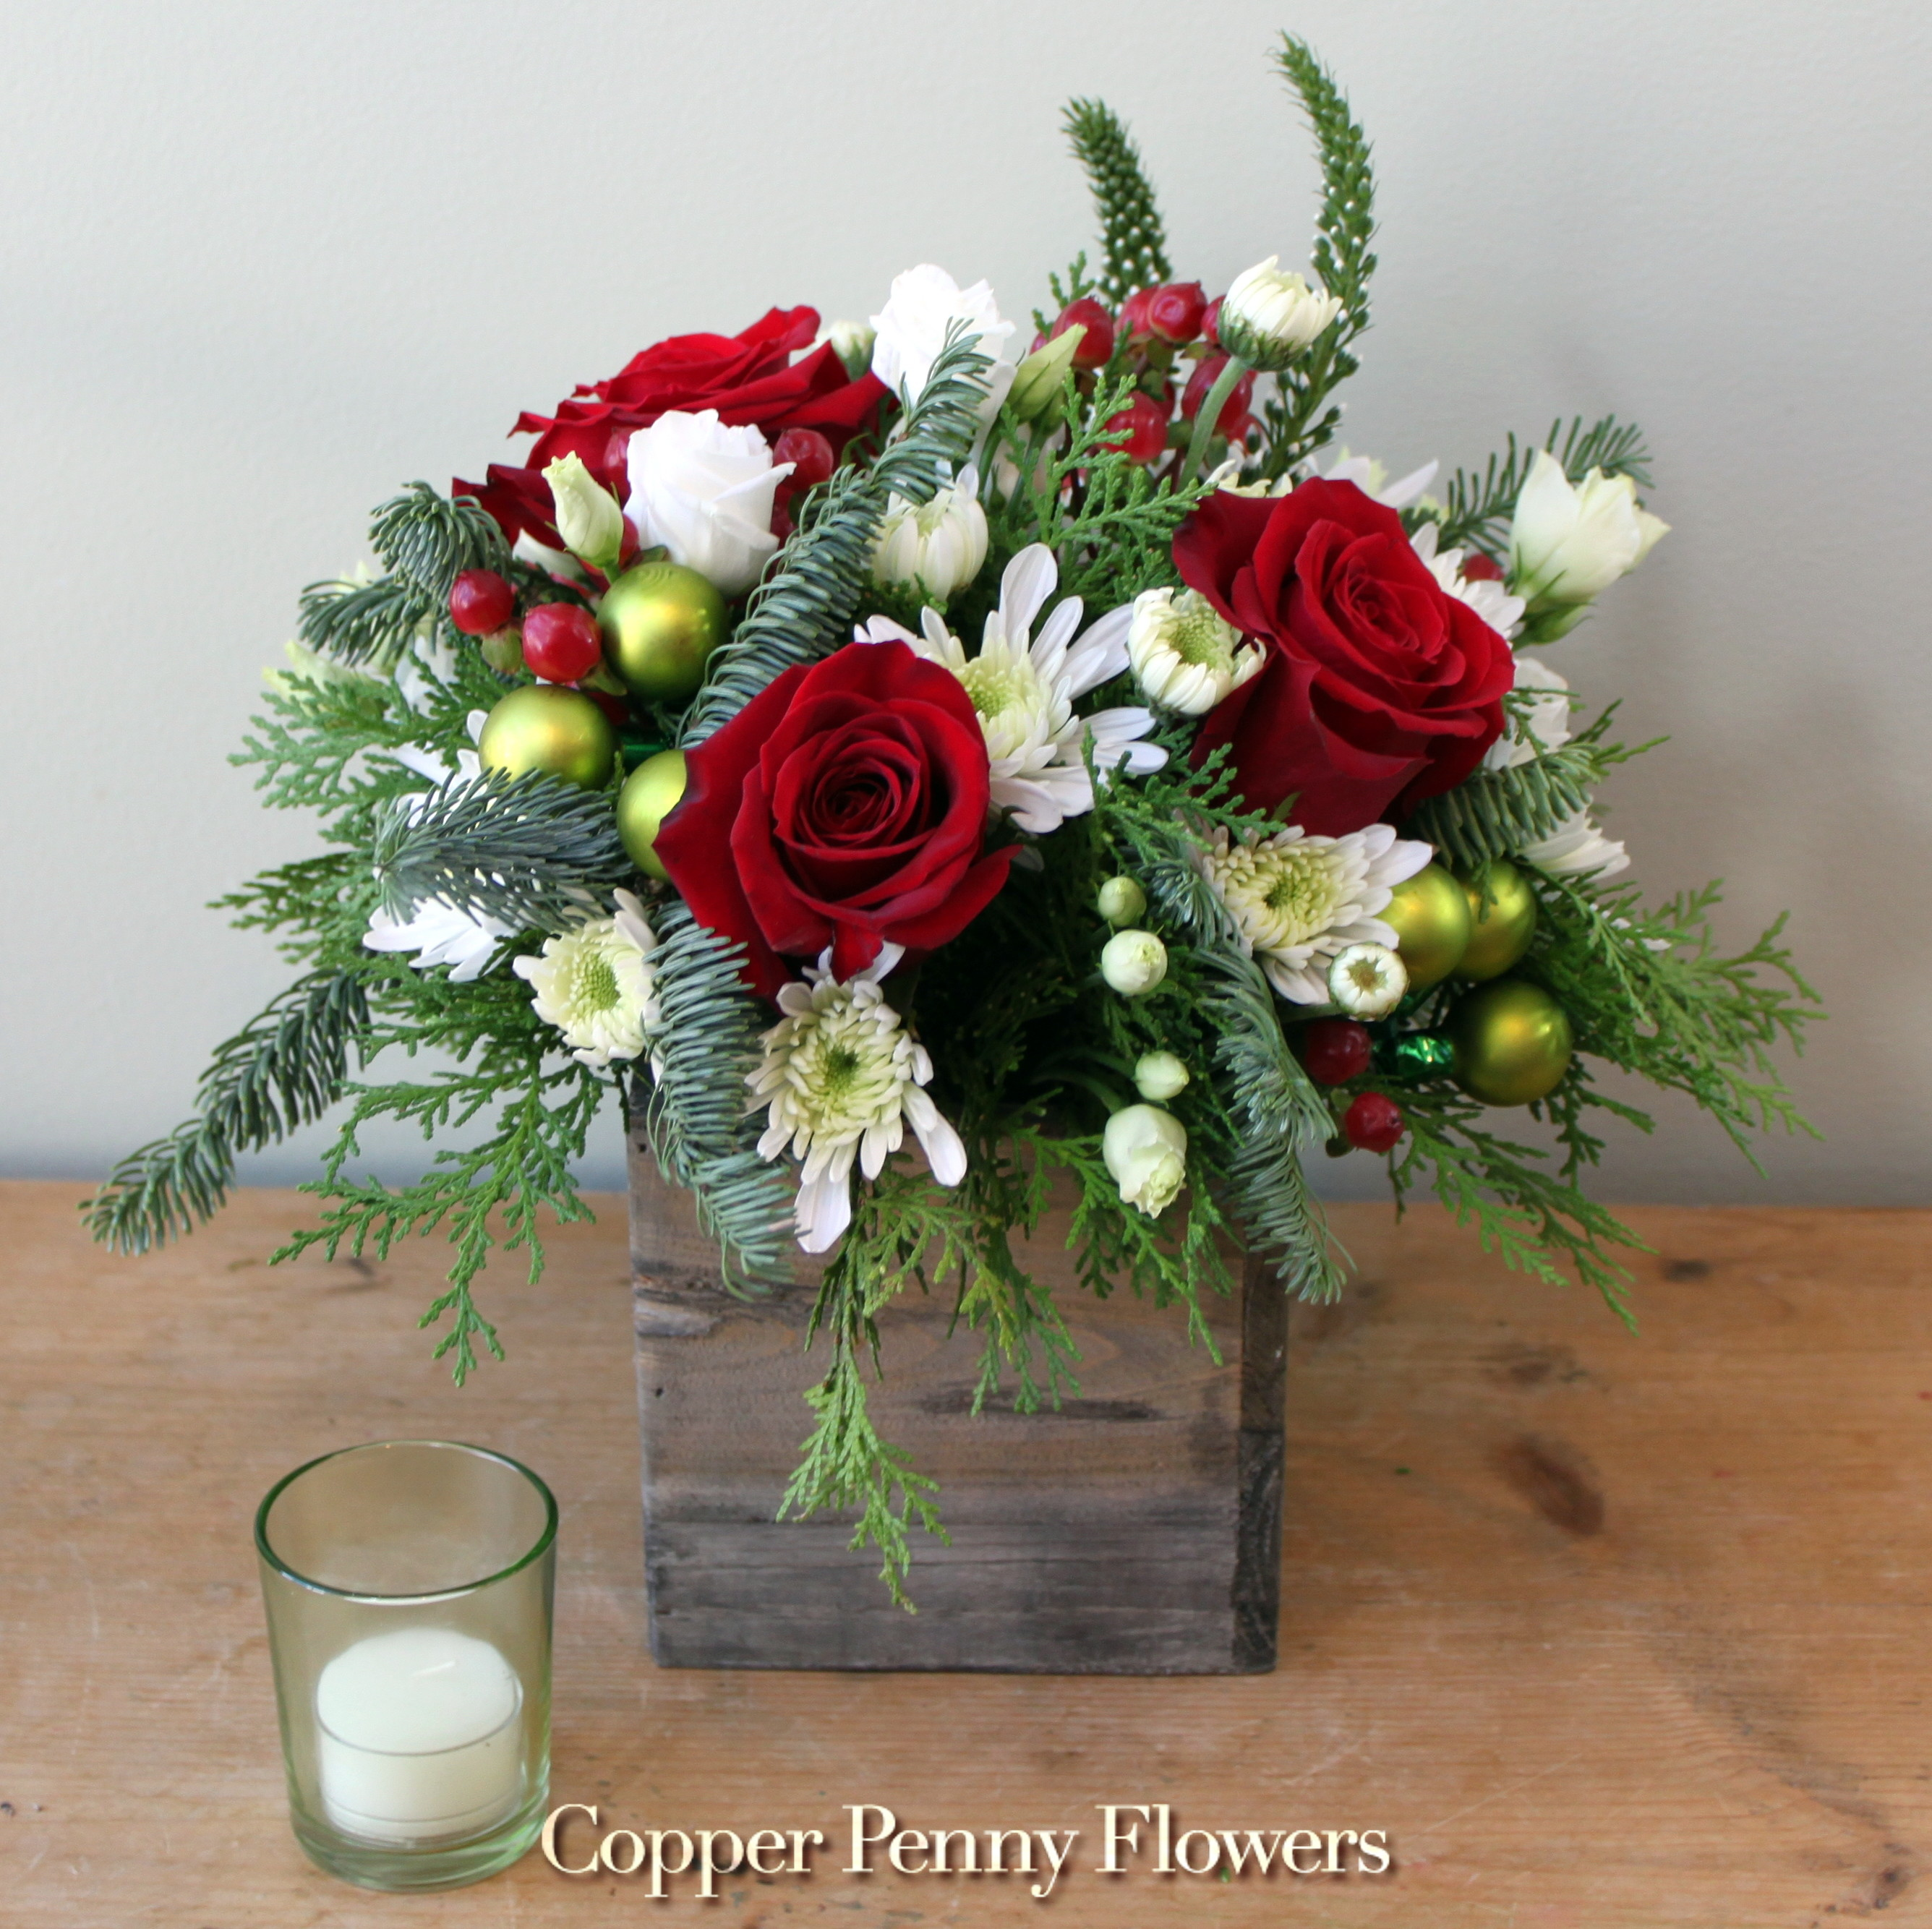 Evergreen Hello features red roses with evergreens and white flower accents in a wooden box